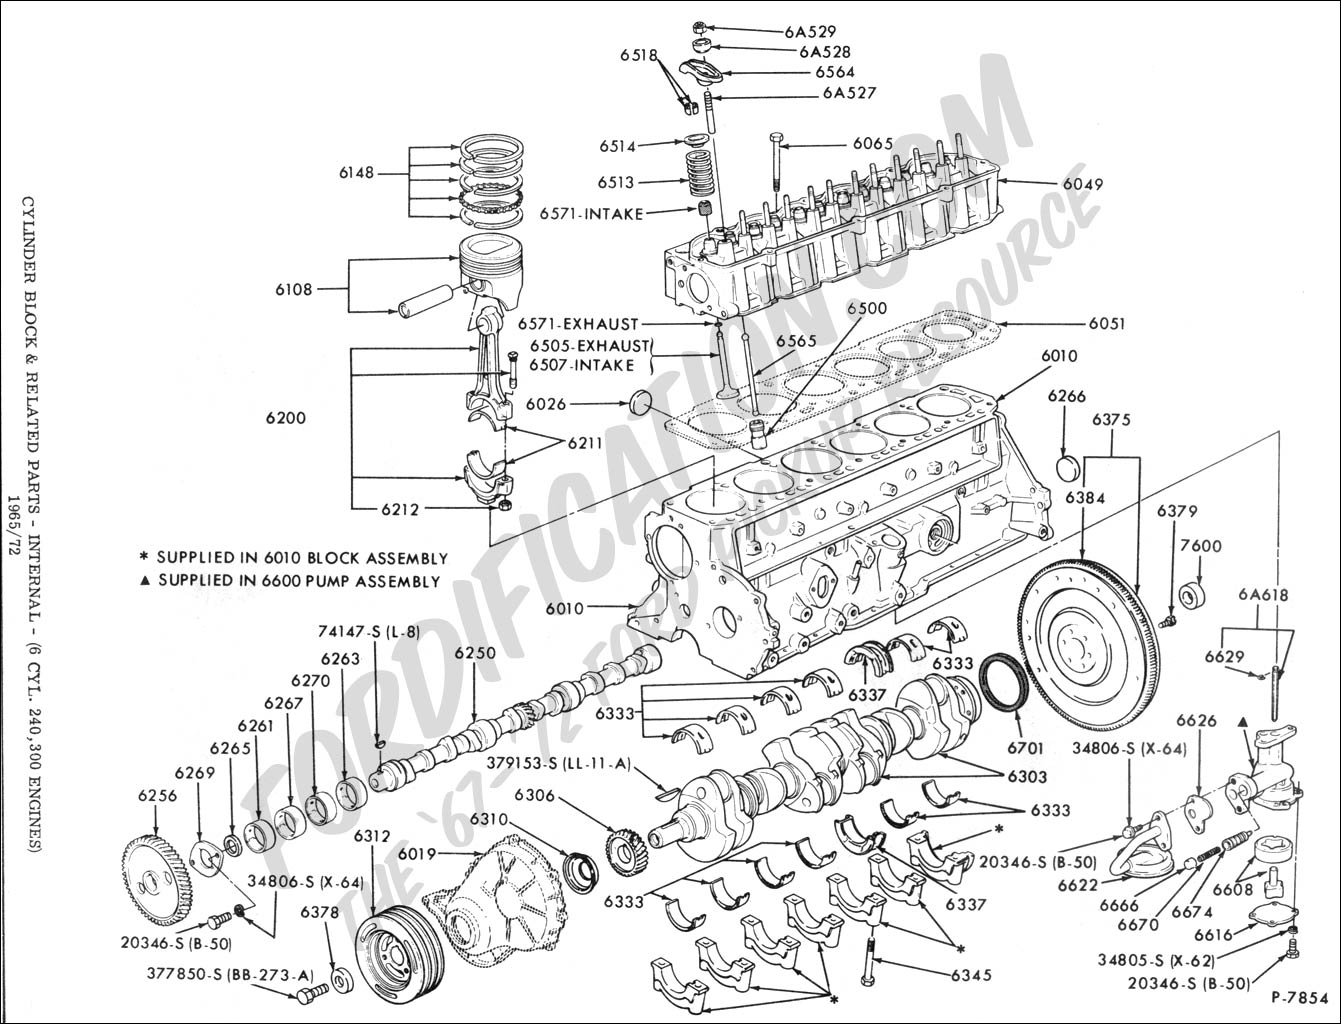 1977 Jeep Cj7 304 V8 Engine Diagram likewise International V8 Engine Diagram likewise 4 Cylinder Firing Order Diagram furthermore Showthread furthermore Chevrolet 350 Hei Firing Order. on 304 v8 firing order diagram